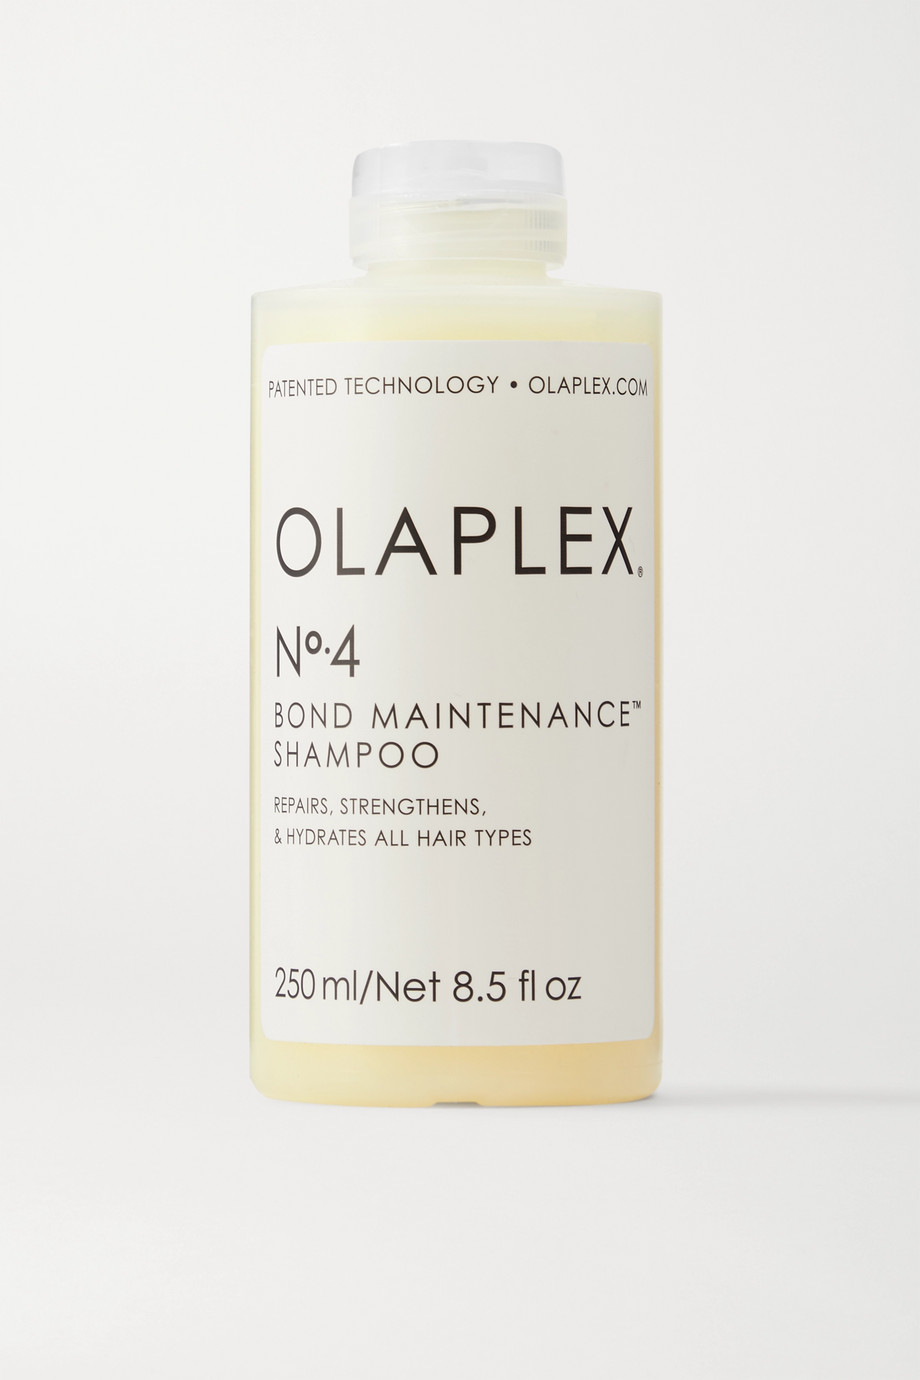 Olaplex No.4 Bond Maintenance Shampoo, 250ml